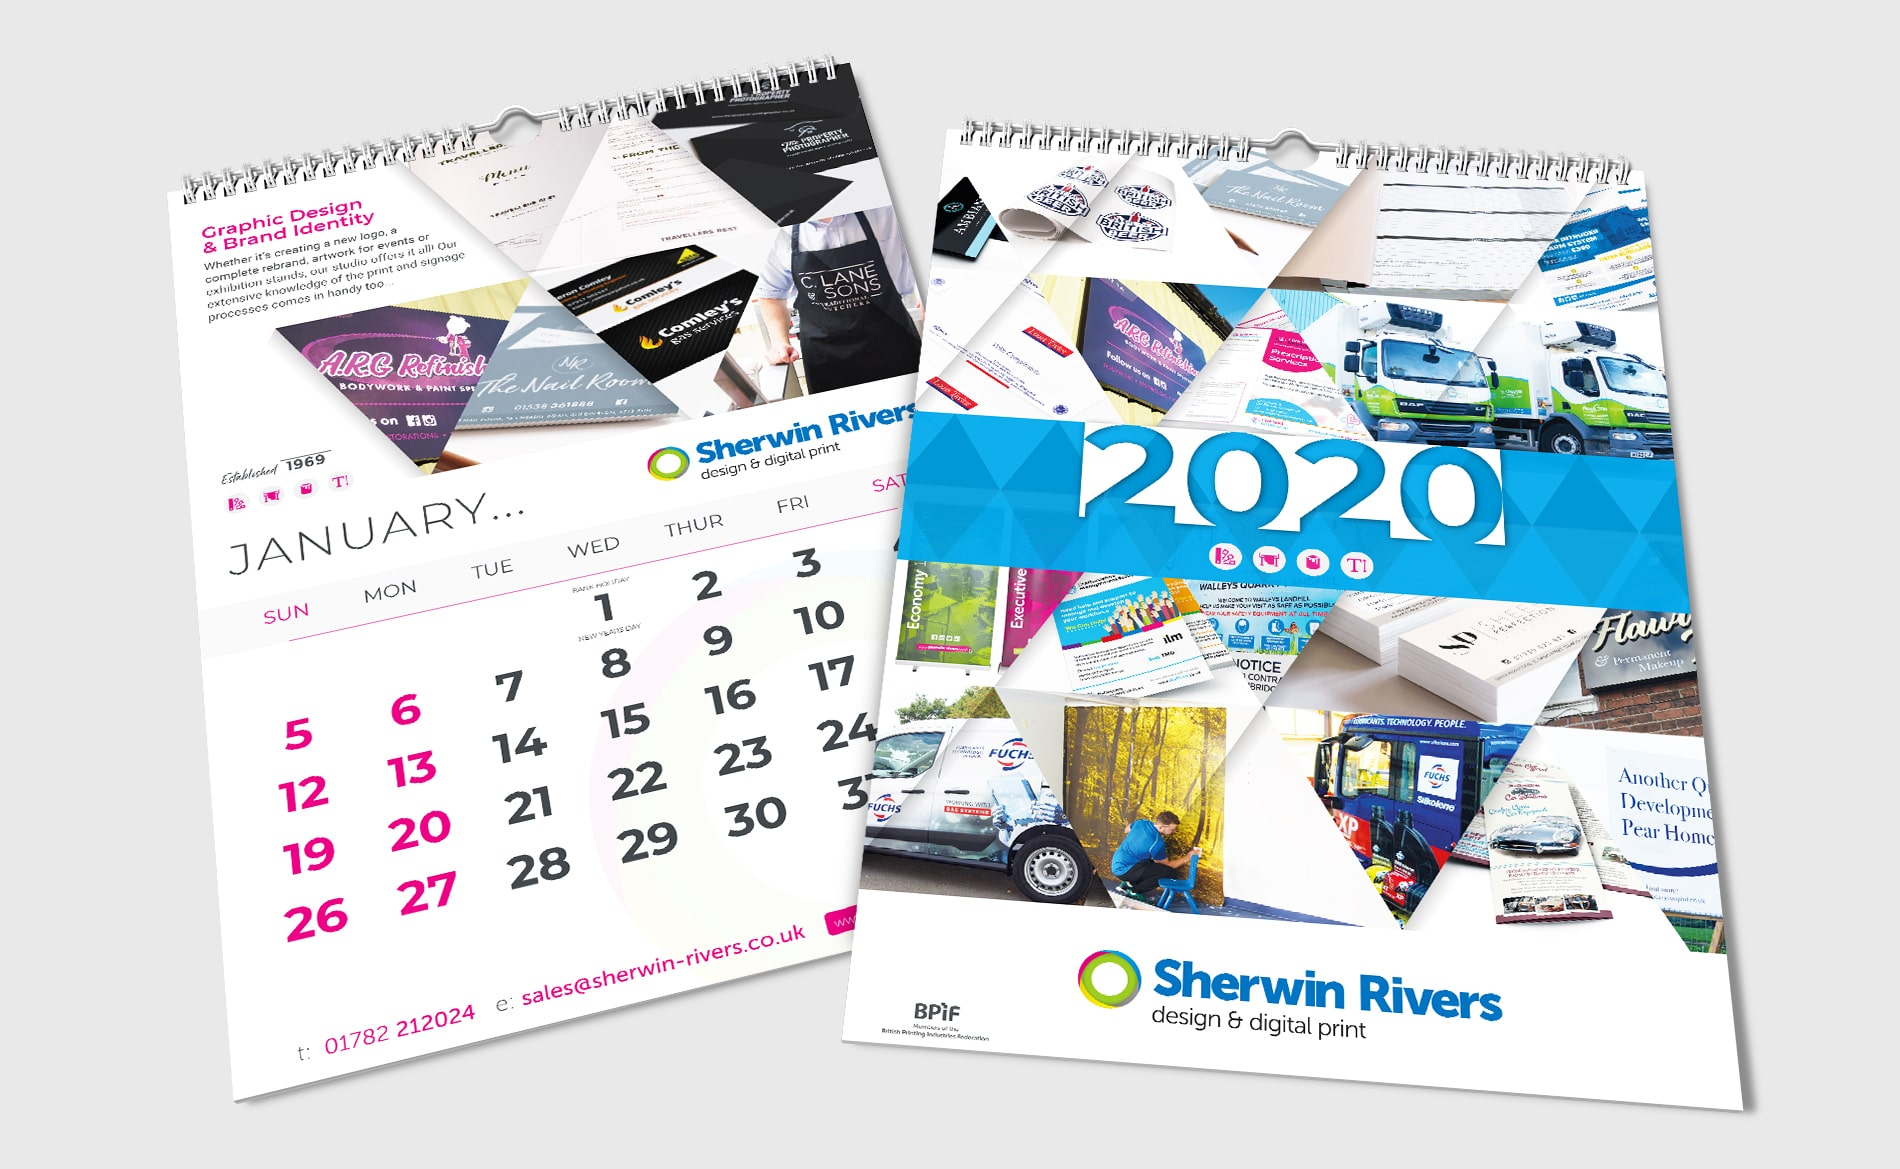 Sherwin Rivers Printers Ltd - Stoke-on-Trent, Staffordshire, 2020 Custom Business Calendar Printing